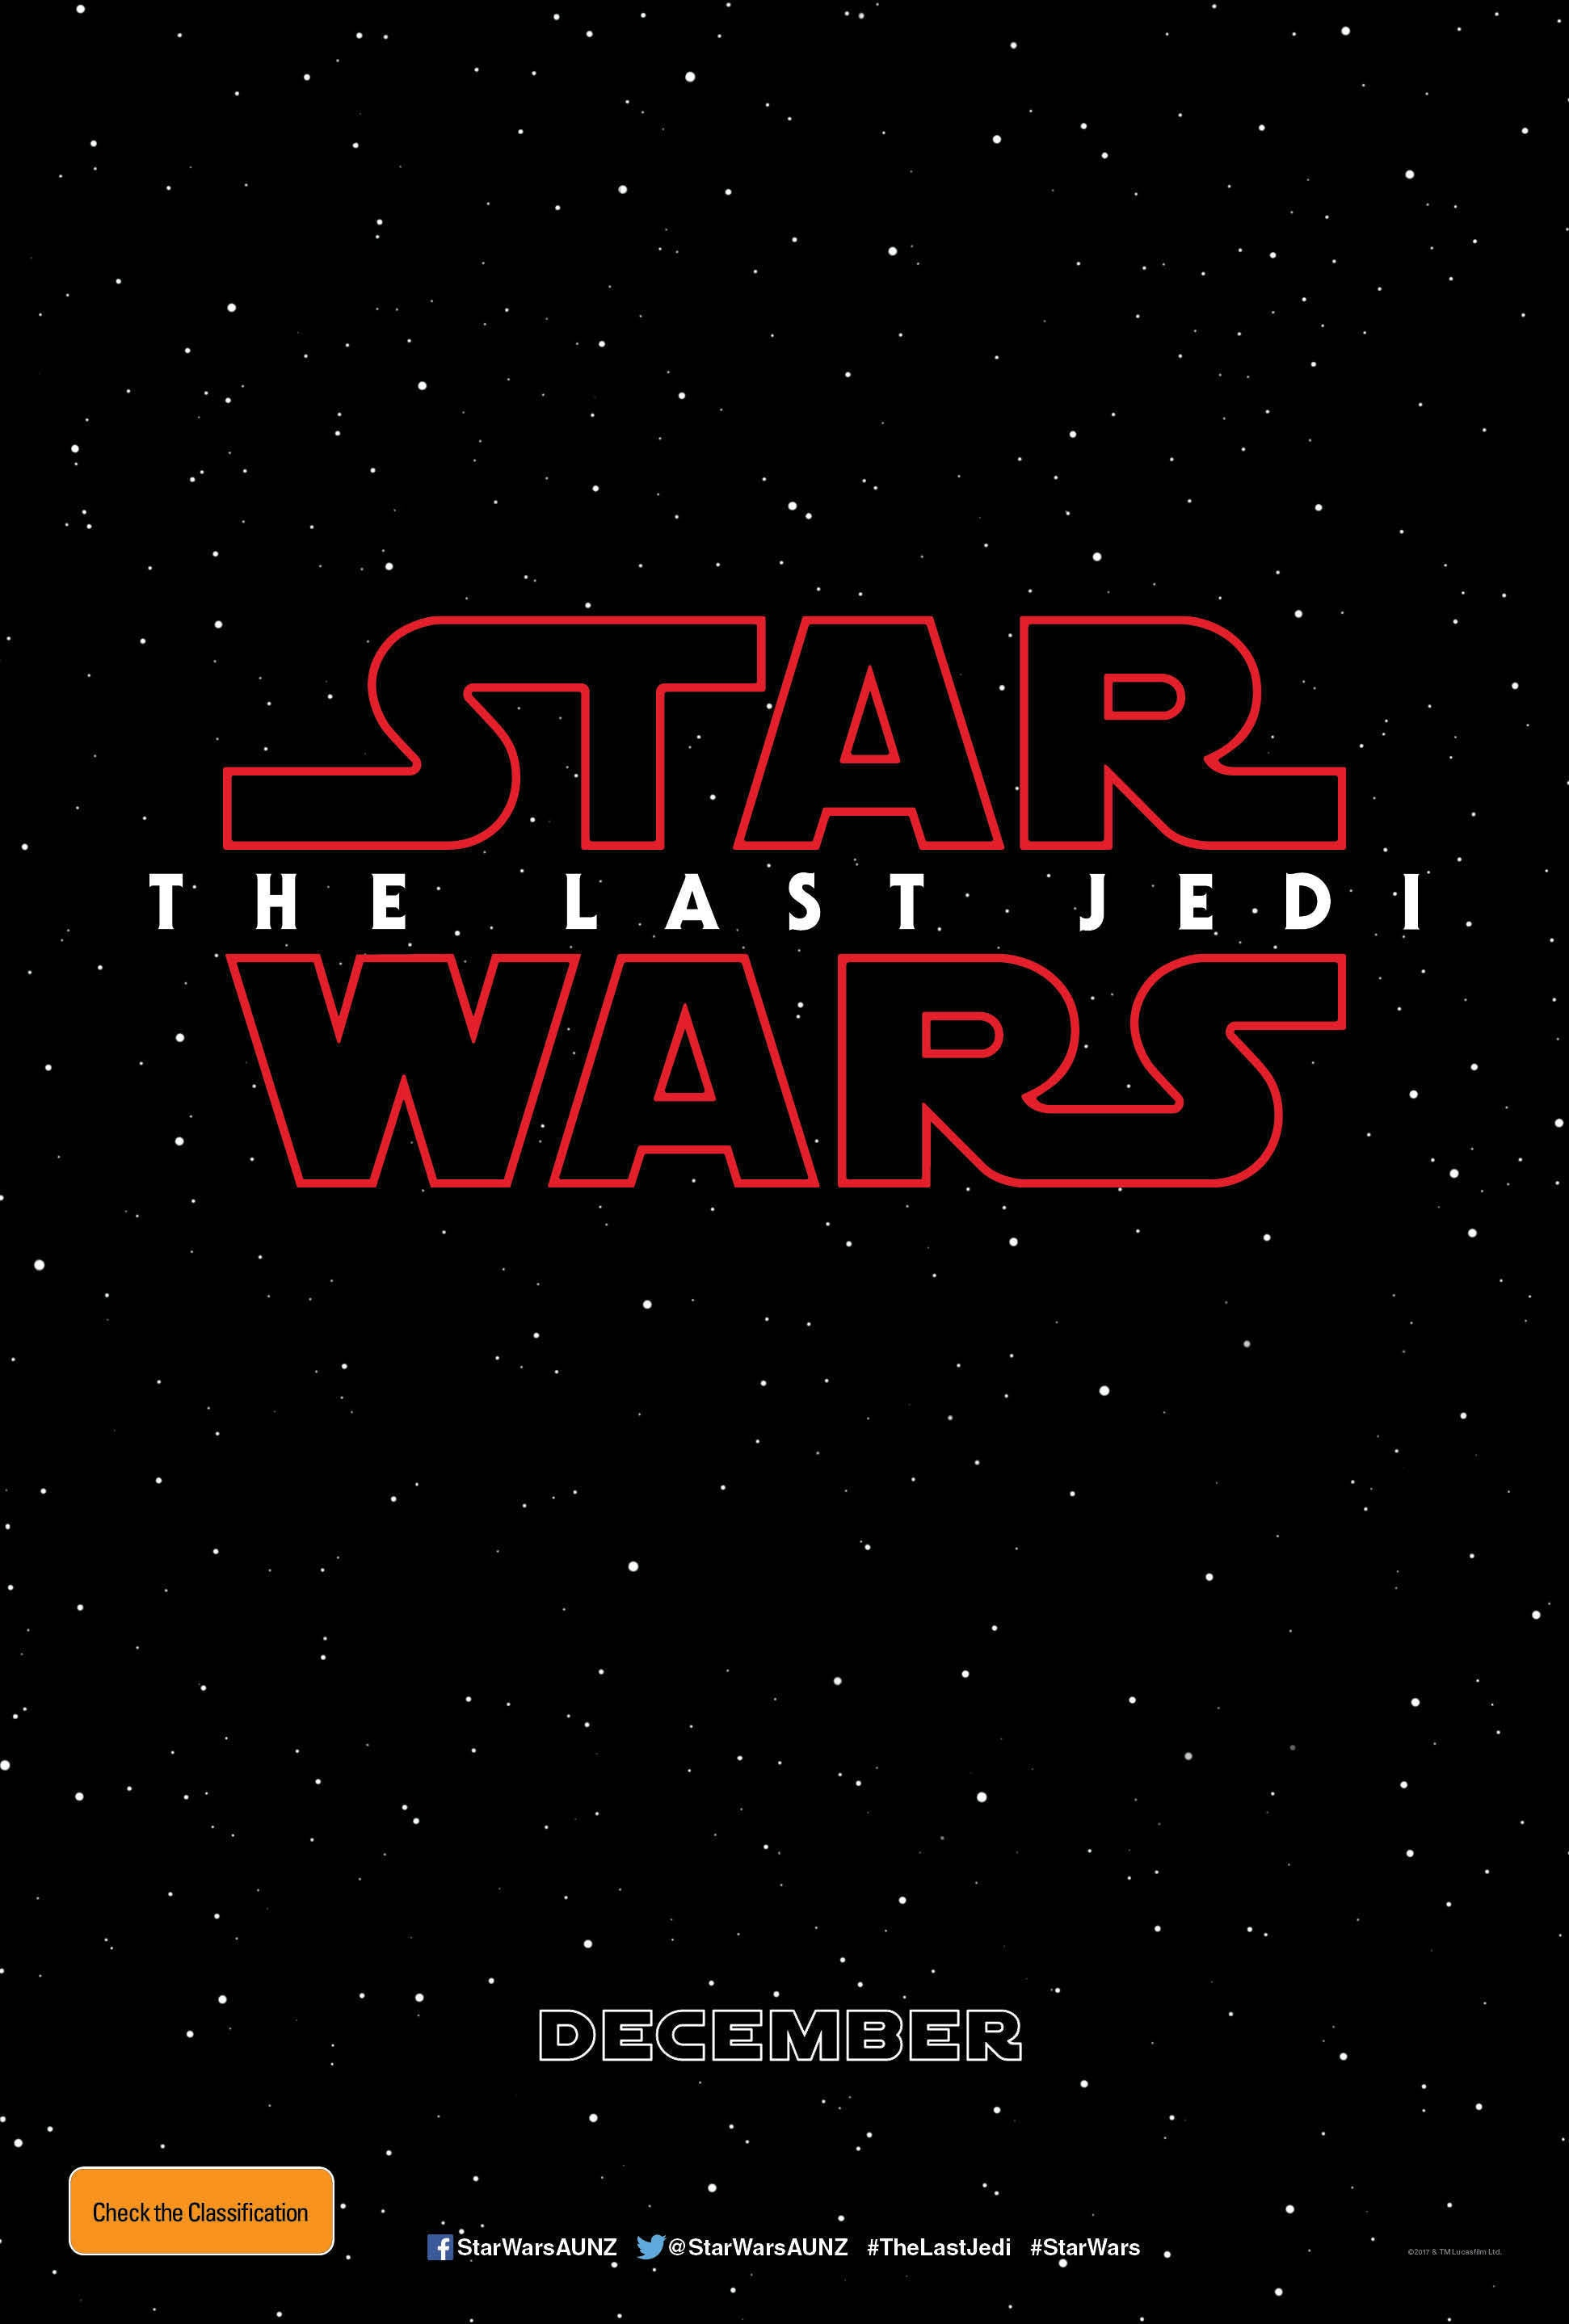 Star Wars Episode 8: The Last Jedi - Poster